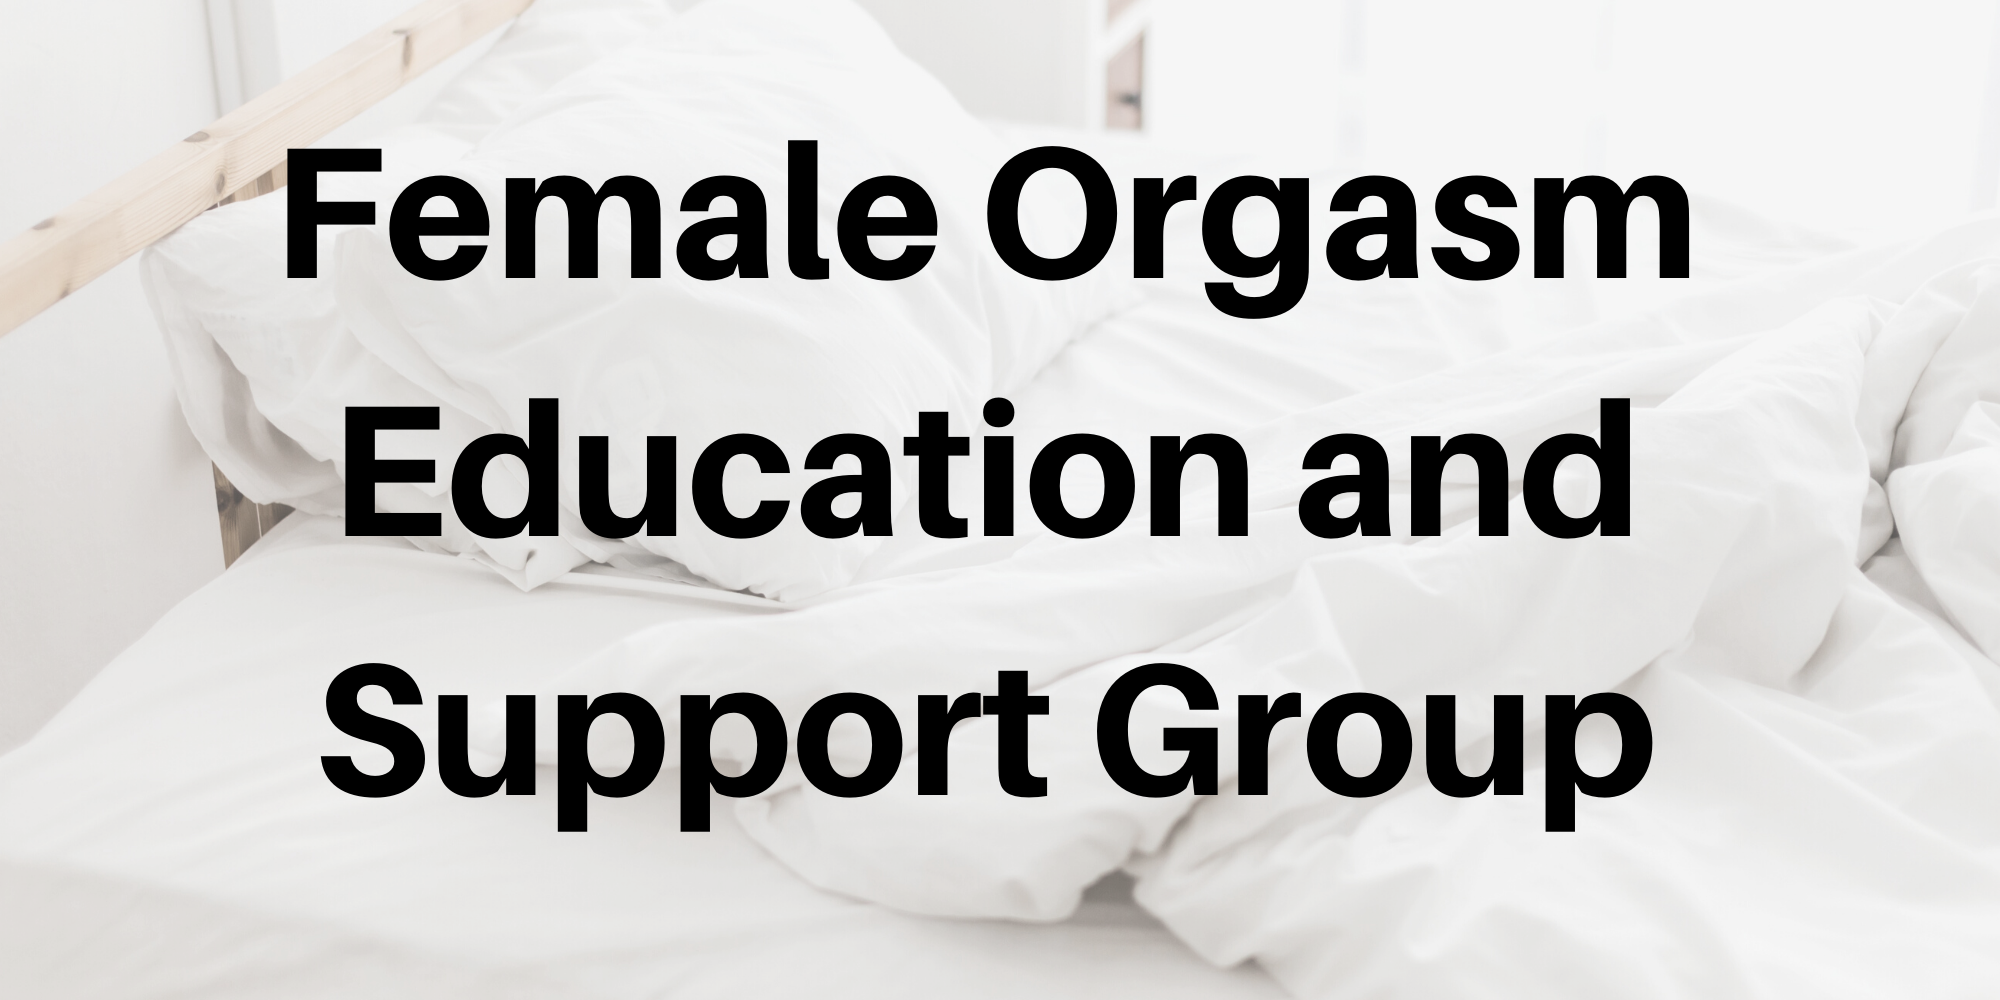 Female Orgasm Support Group- Wednesday Evenings